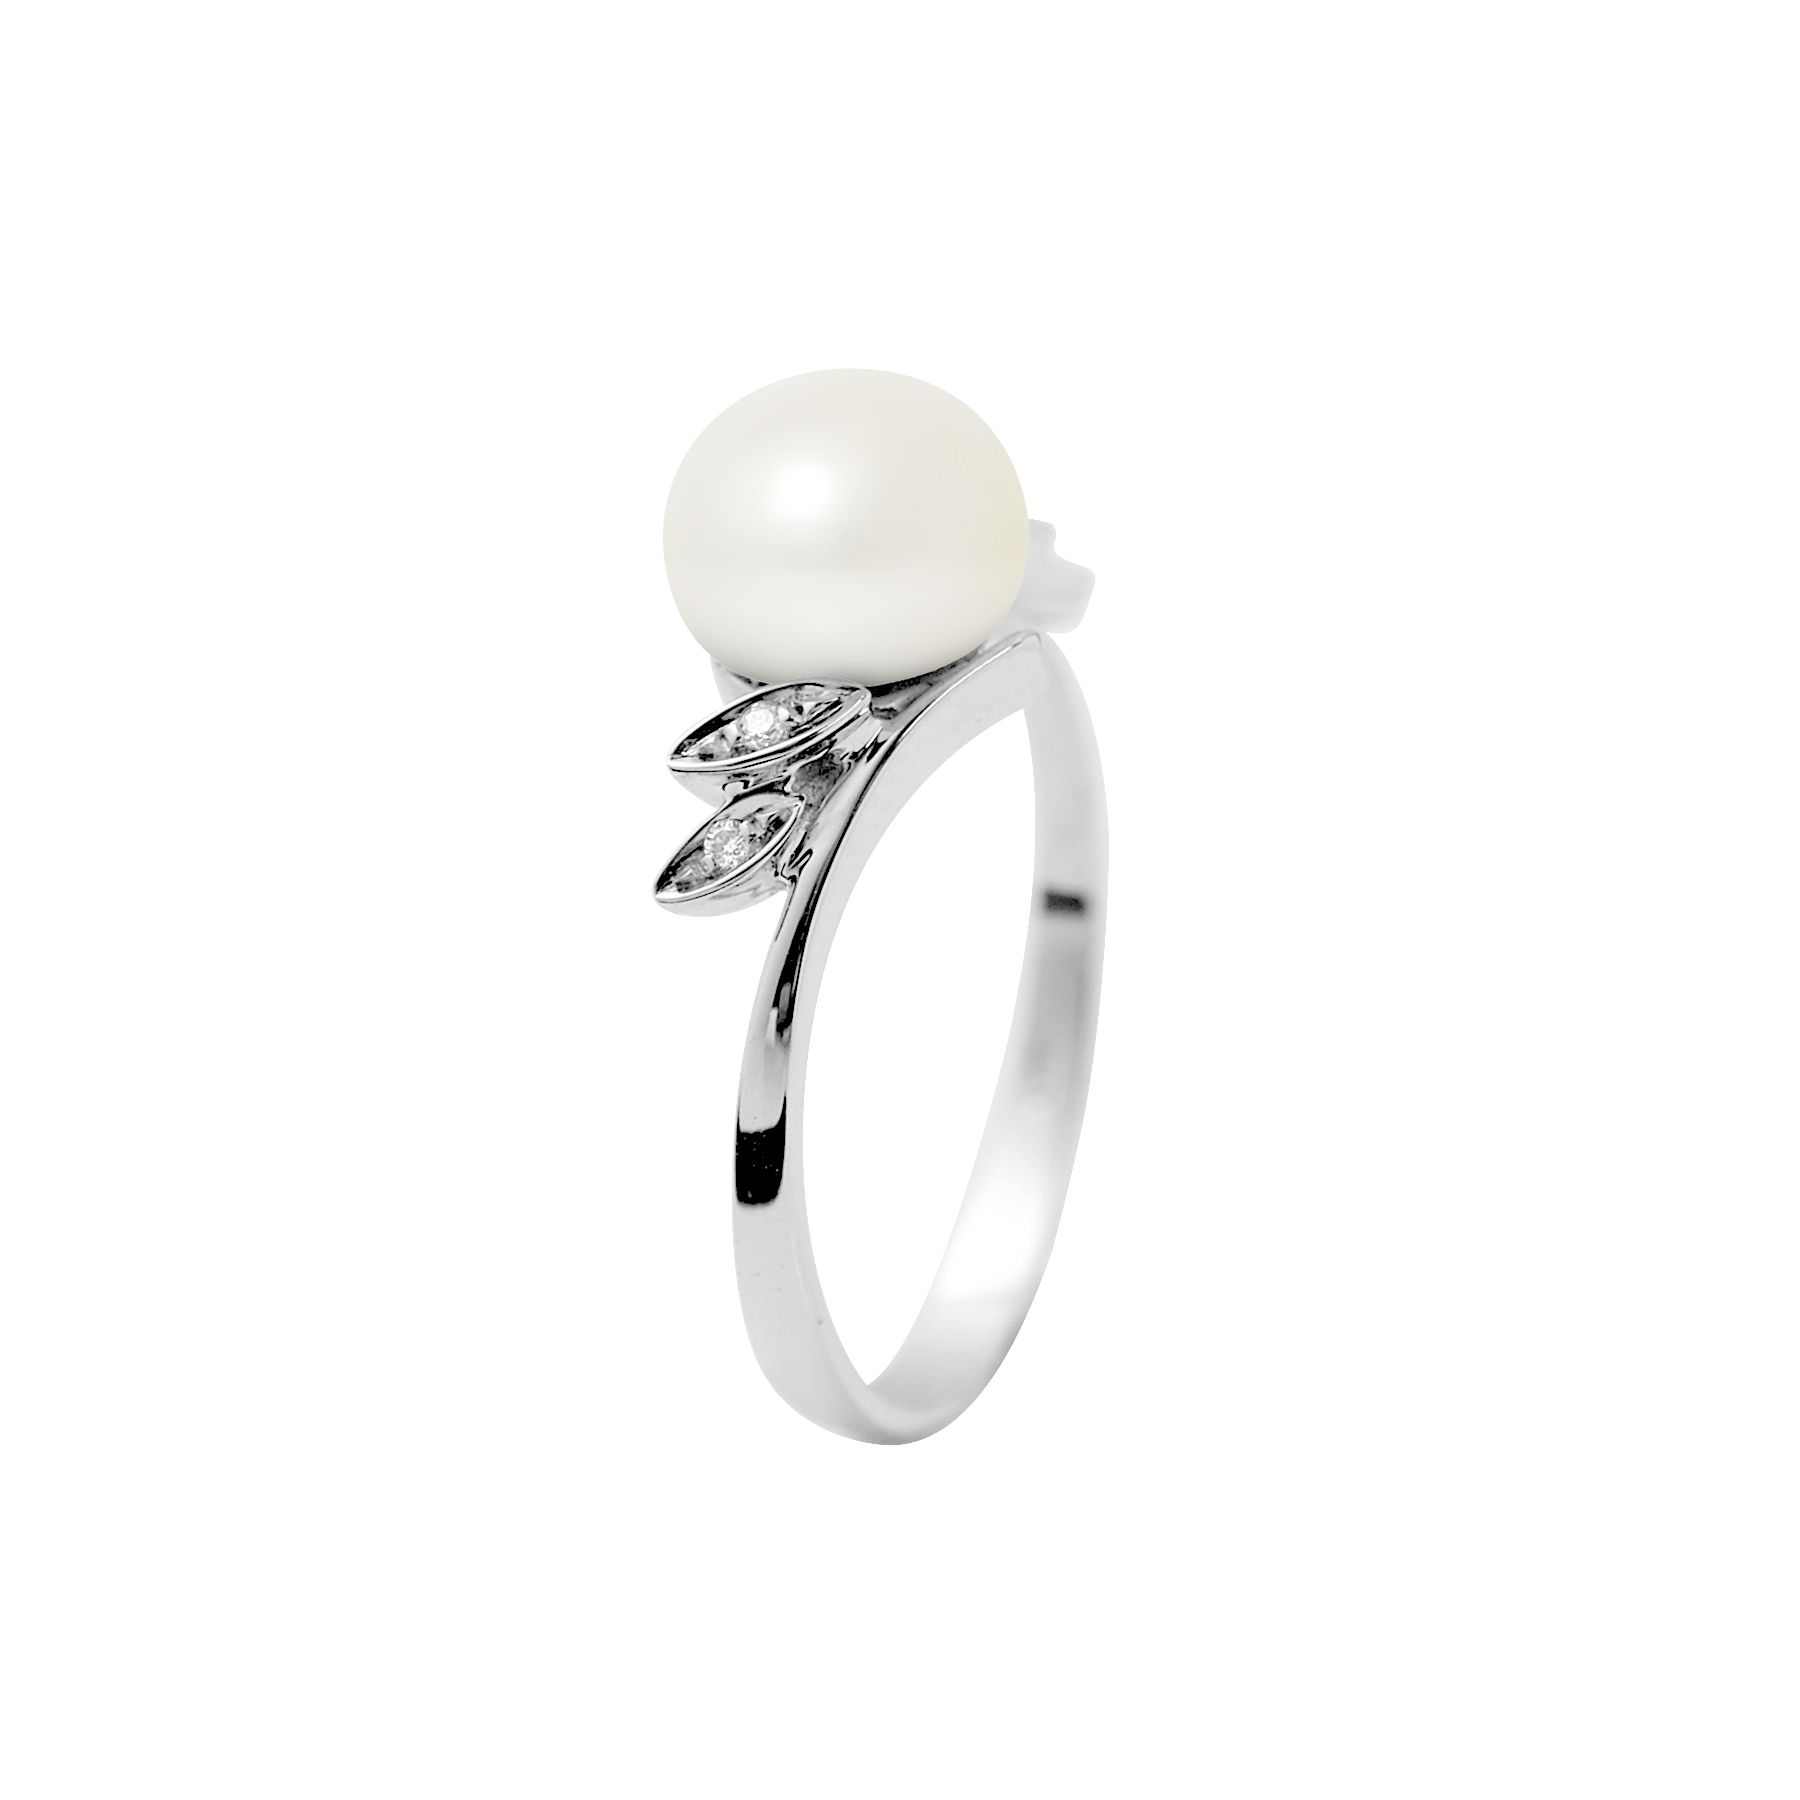 DIADEMA - Ring - White Gold - Real Freshwater Pearls - White